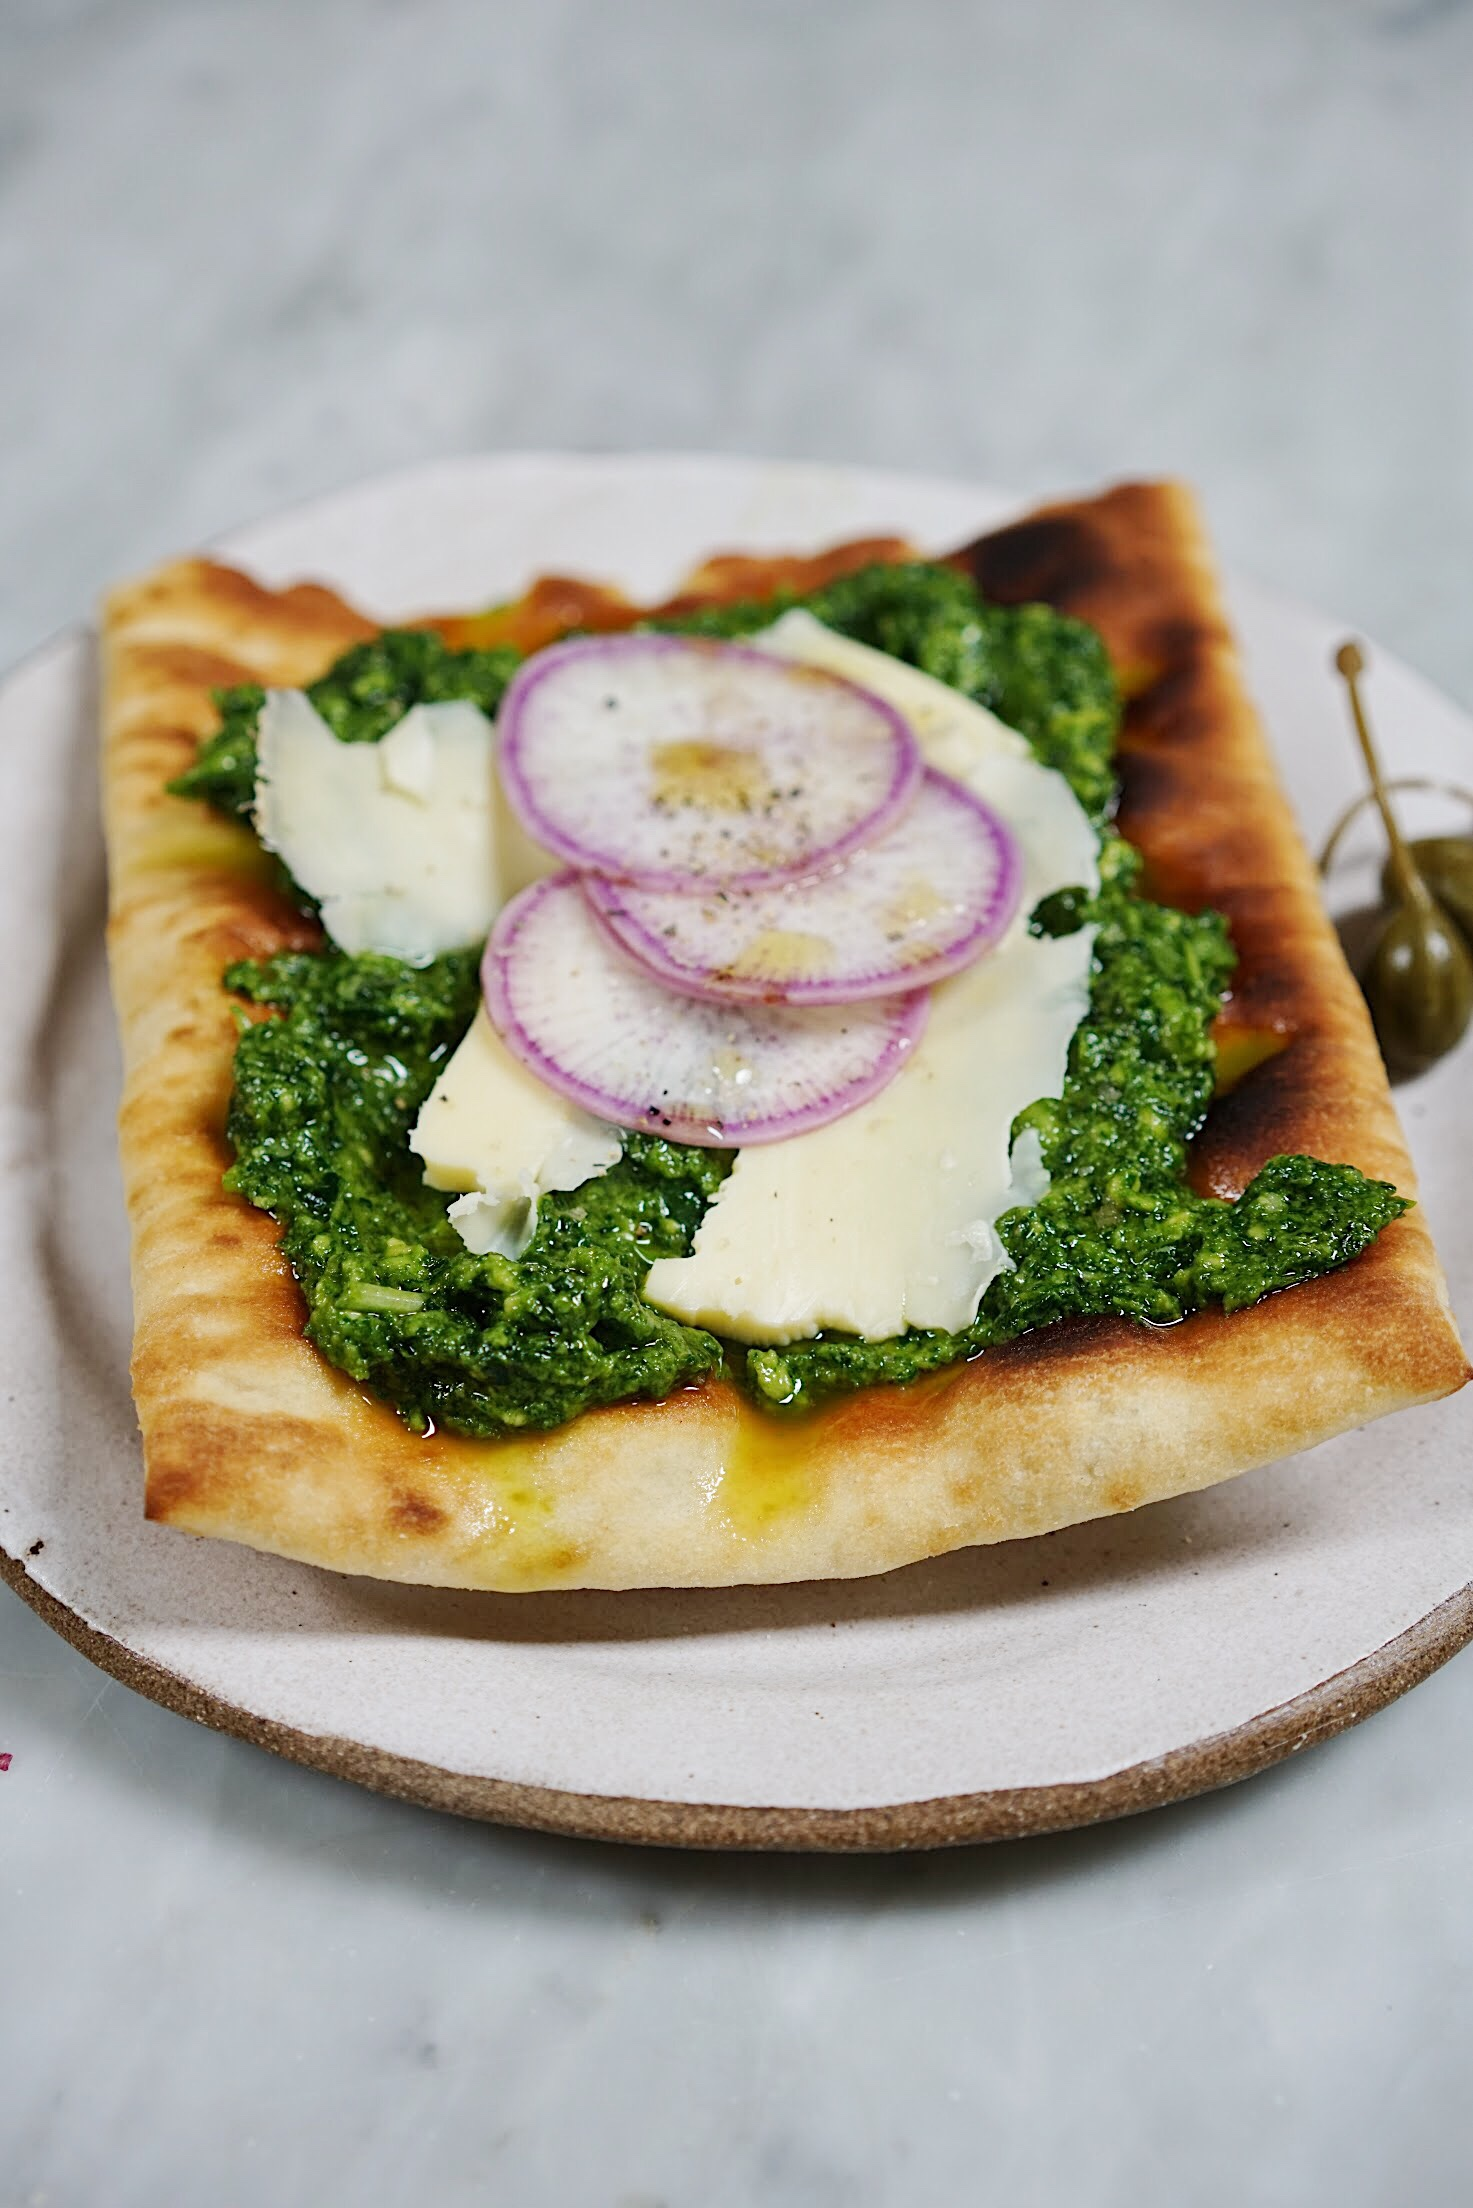 Le Cremeux and Mint-Kale Pesto Tartines + A Giveaway (personalized wheel of cheese!)